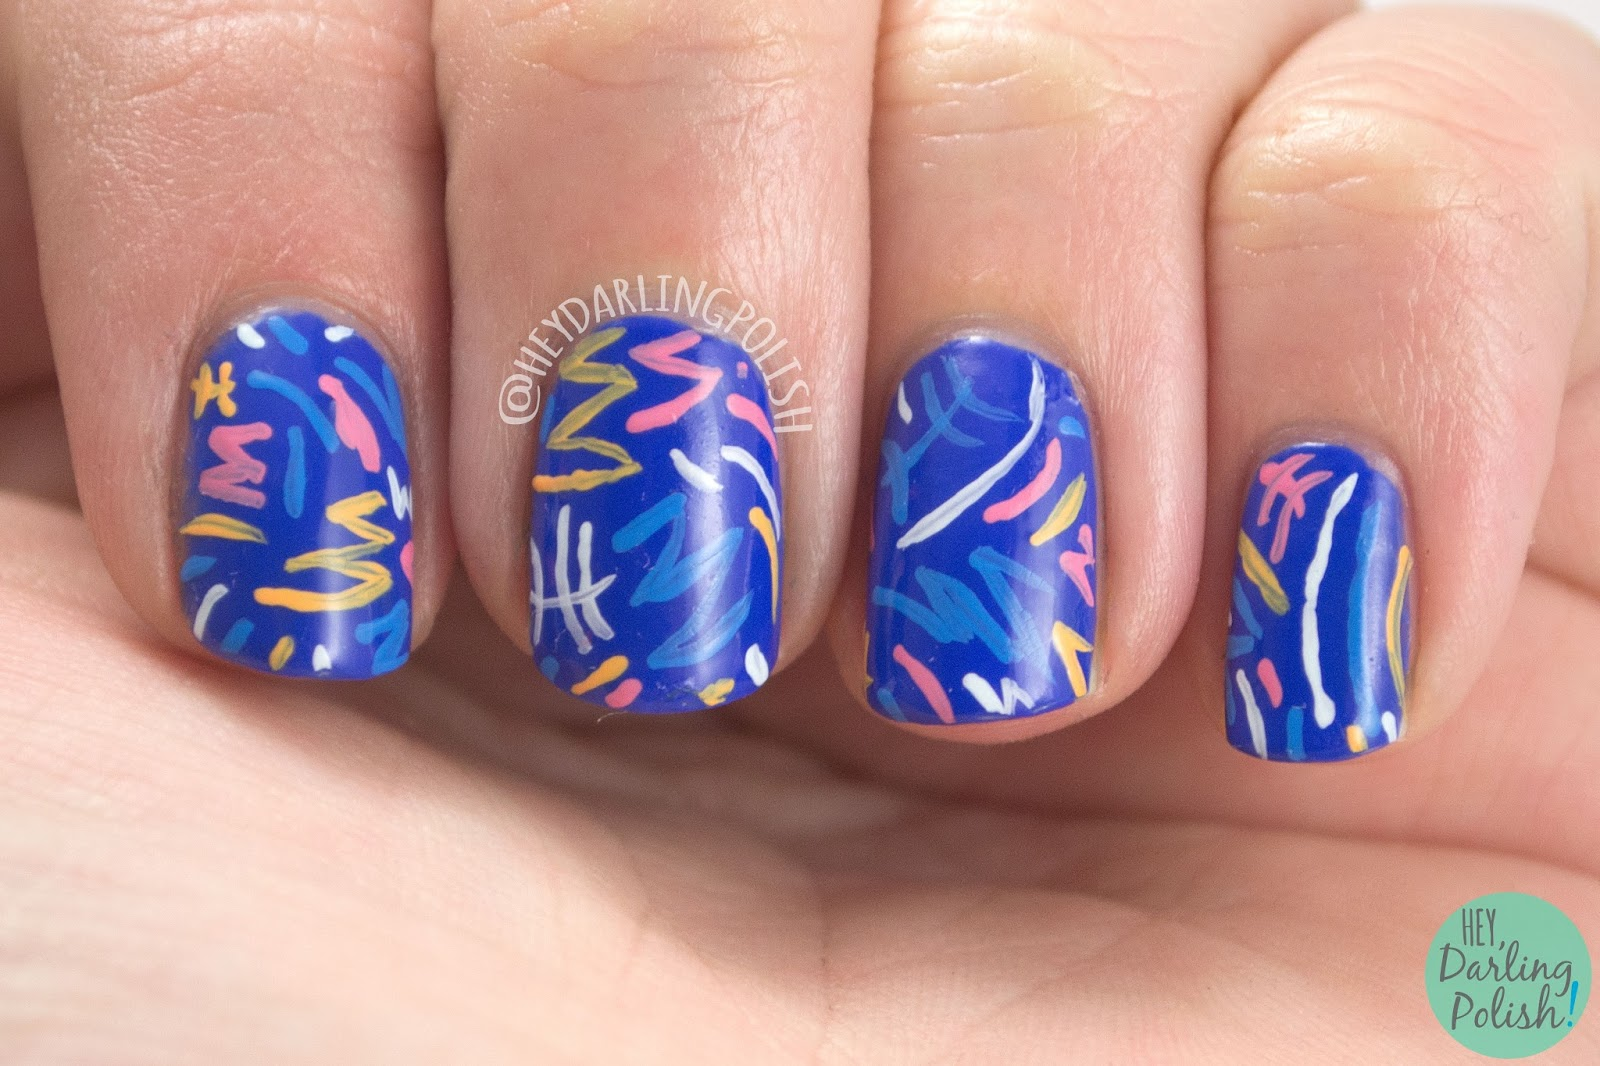 nails, nail art, nail polish, blue, pattern, hey darling polish, fun, 2015 cnt 31 day challenge